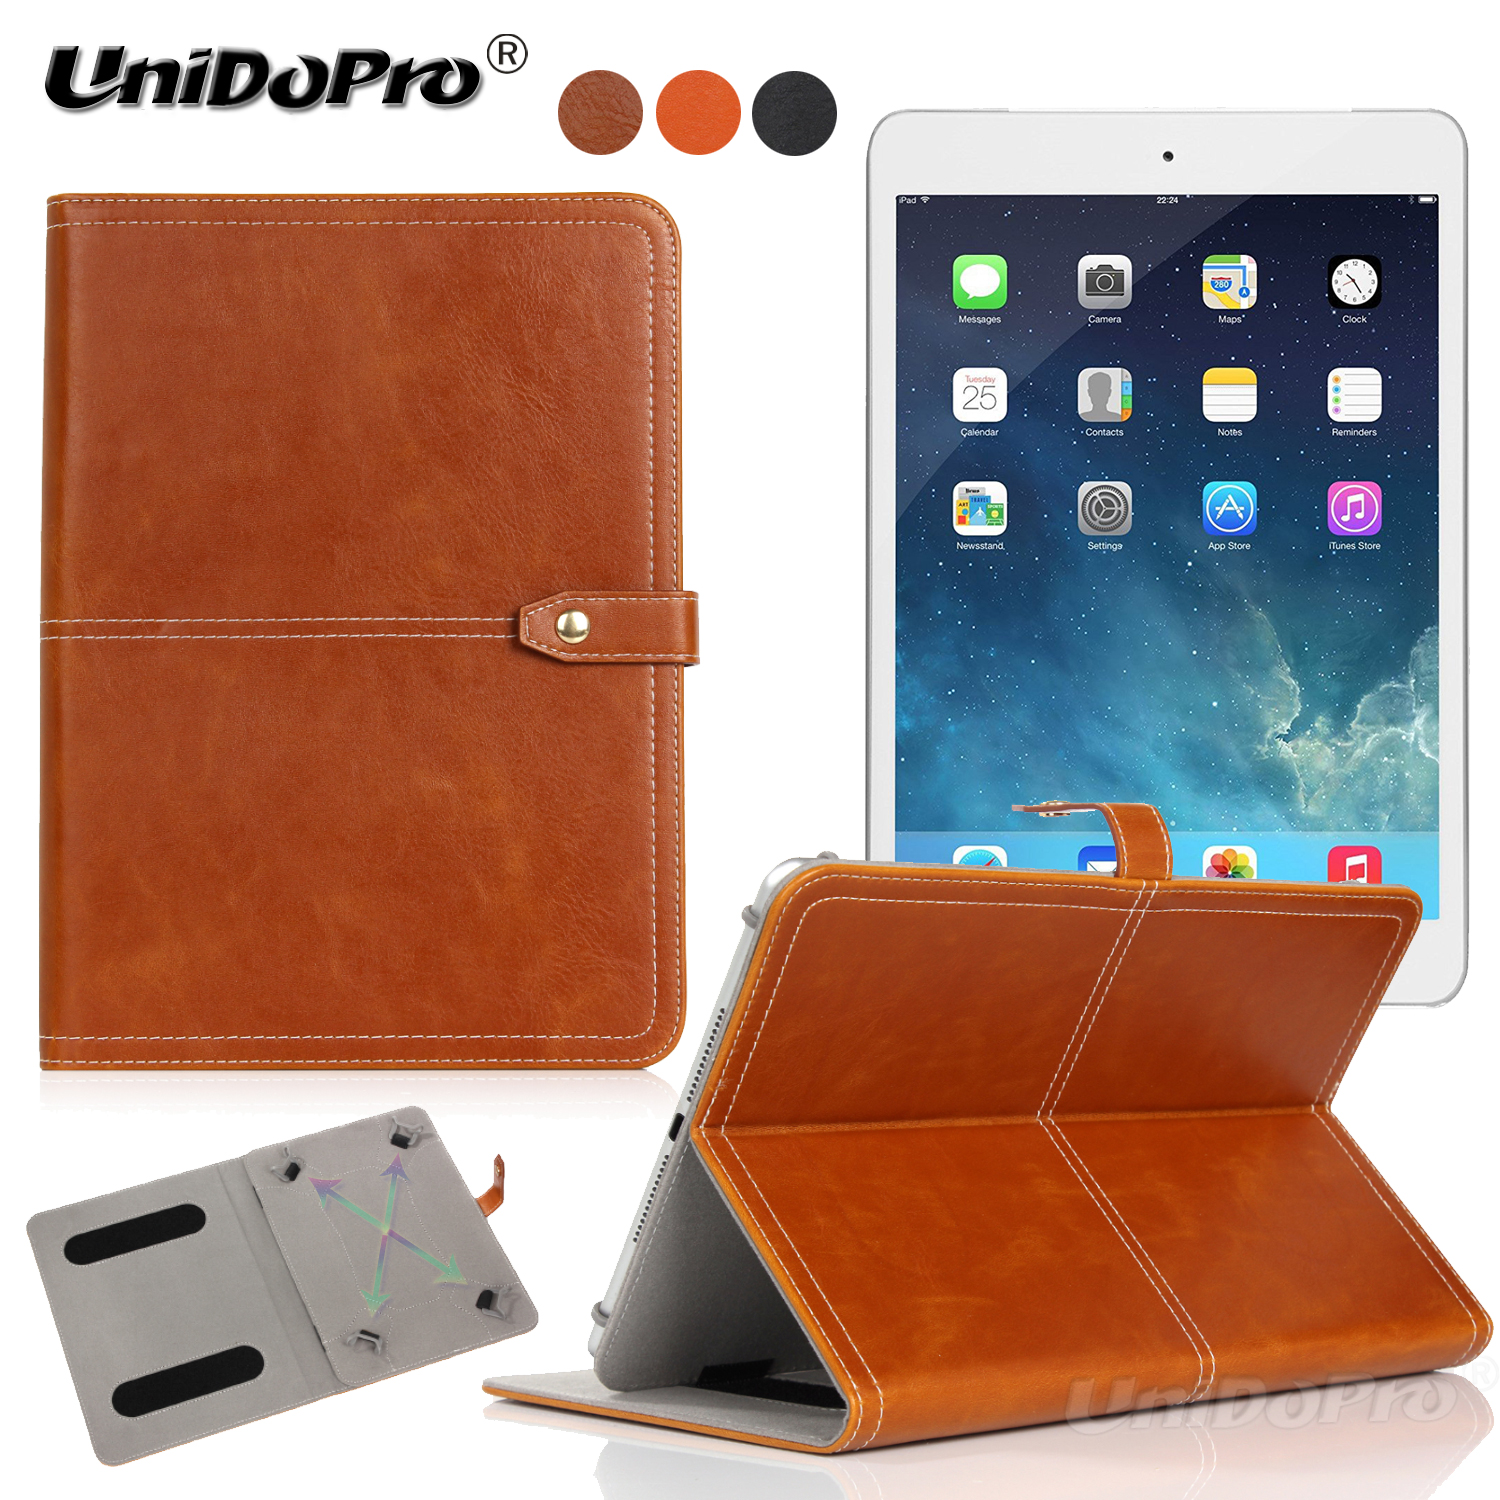 Unidopro Shockproof PU Leather Protective Folio Case for iPad Mini 4 3 2 1 A1538 A1550 A1599 Tablet w/ Multi-angle Stand Cover